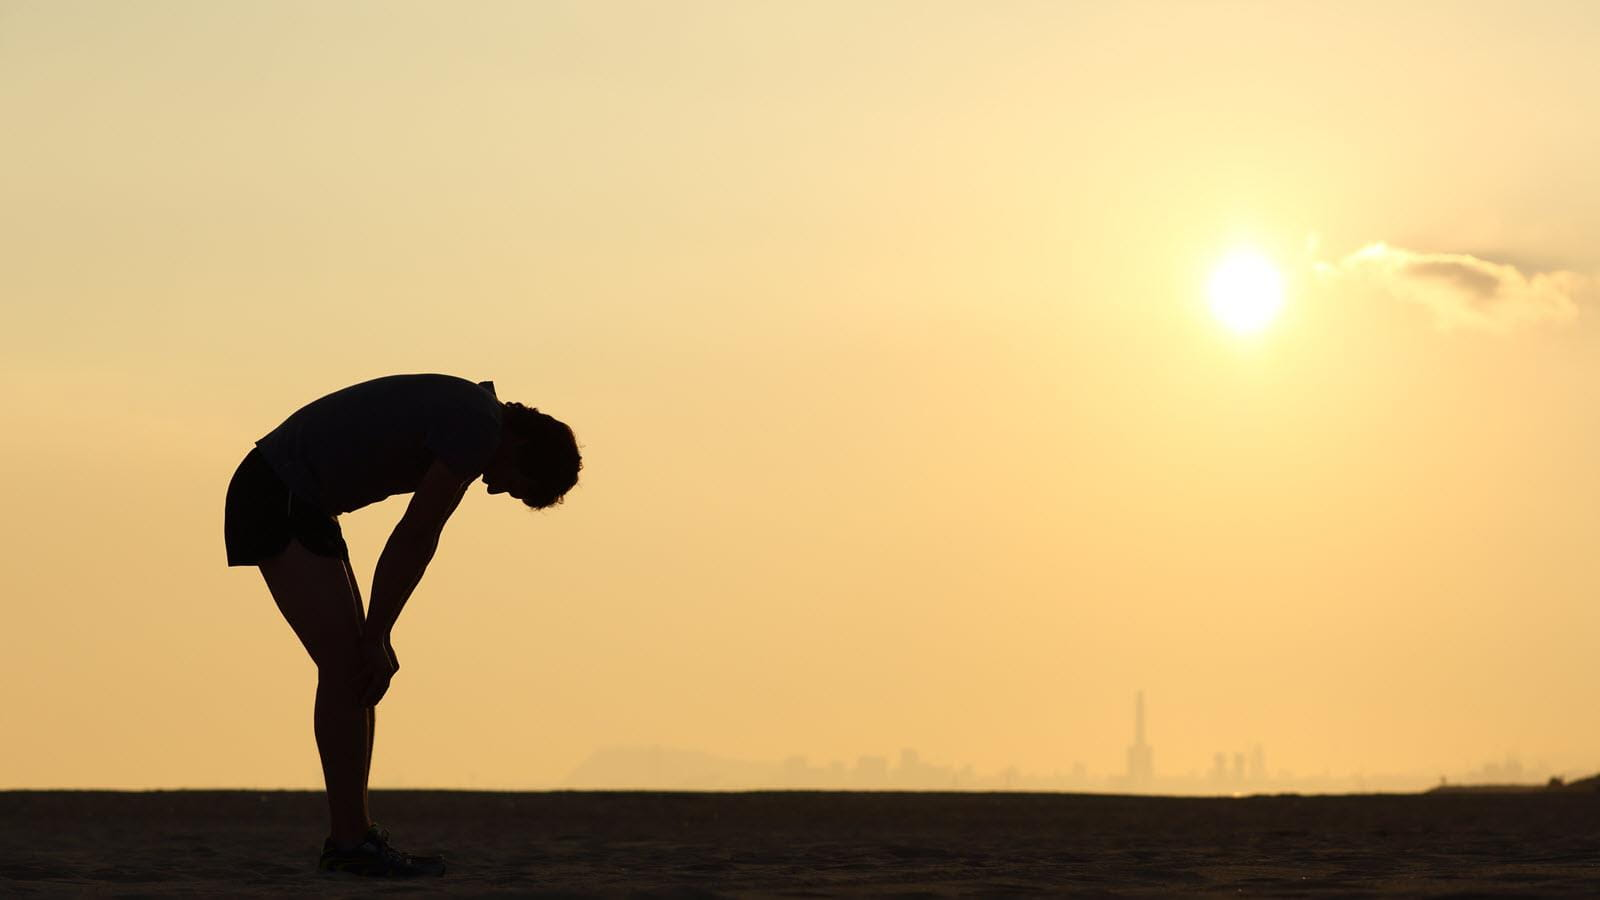 Exercising man doubled over under a hot sun